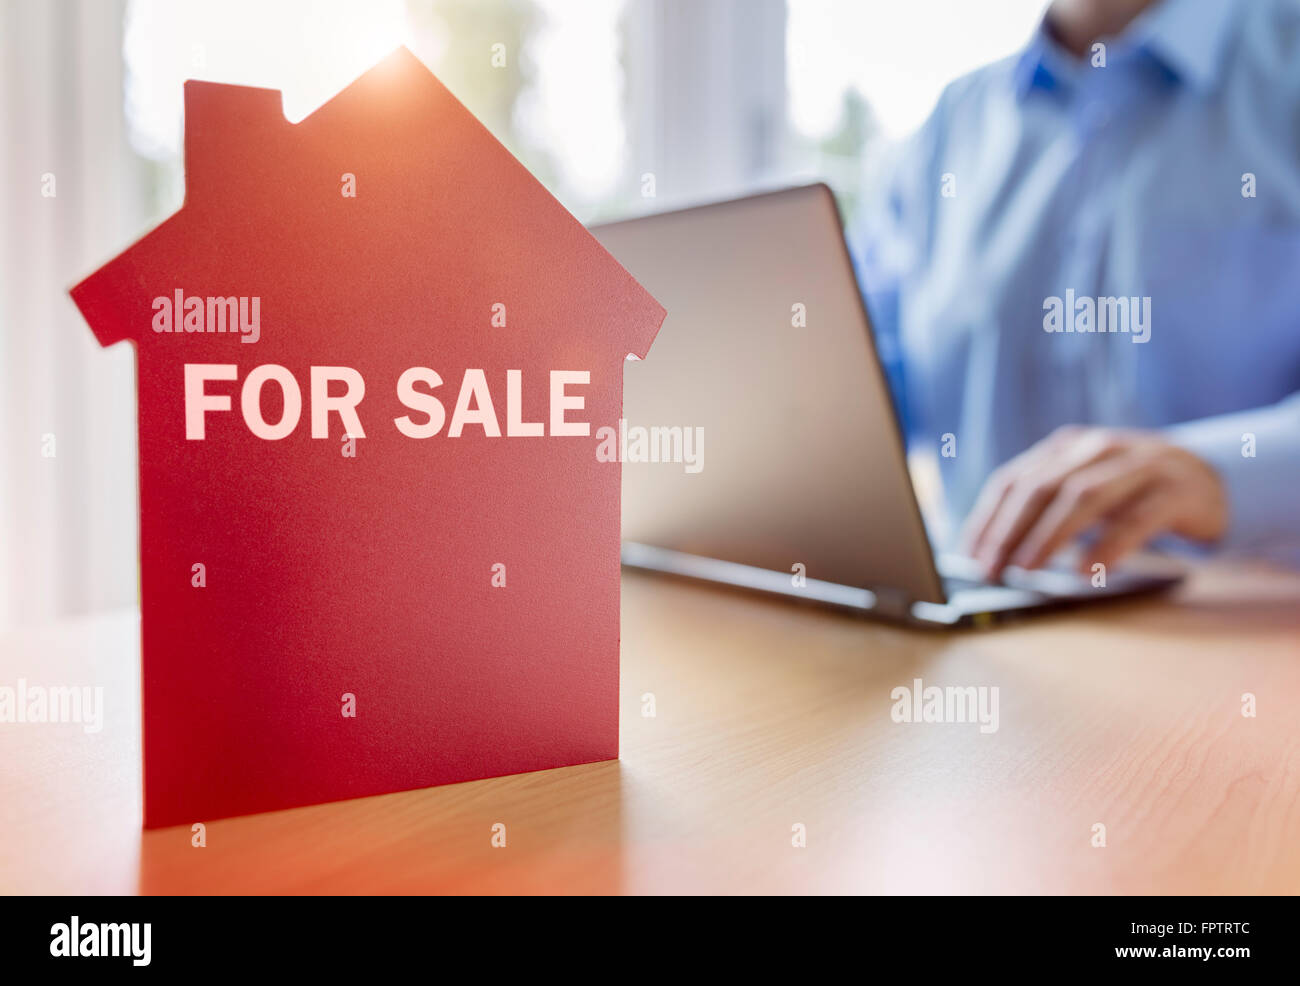 Searching the internet for real estate or new house - Stock Image